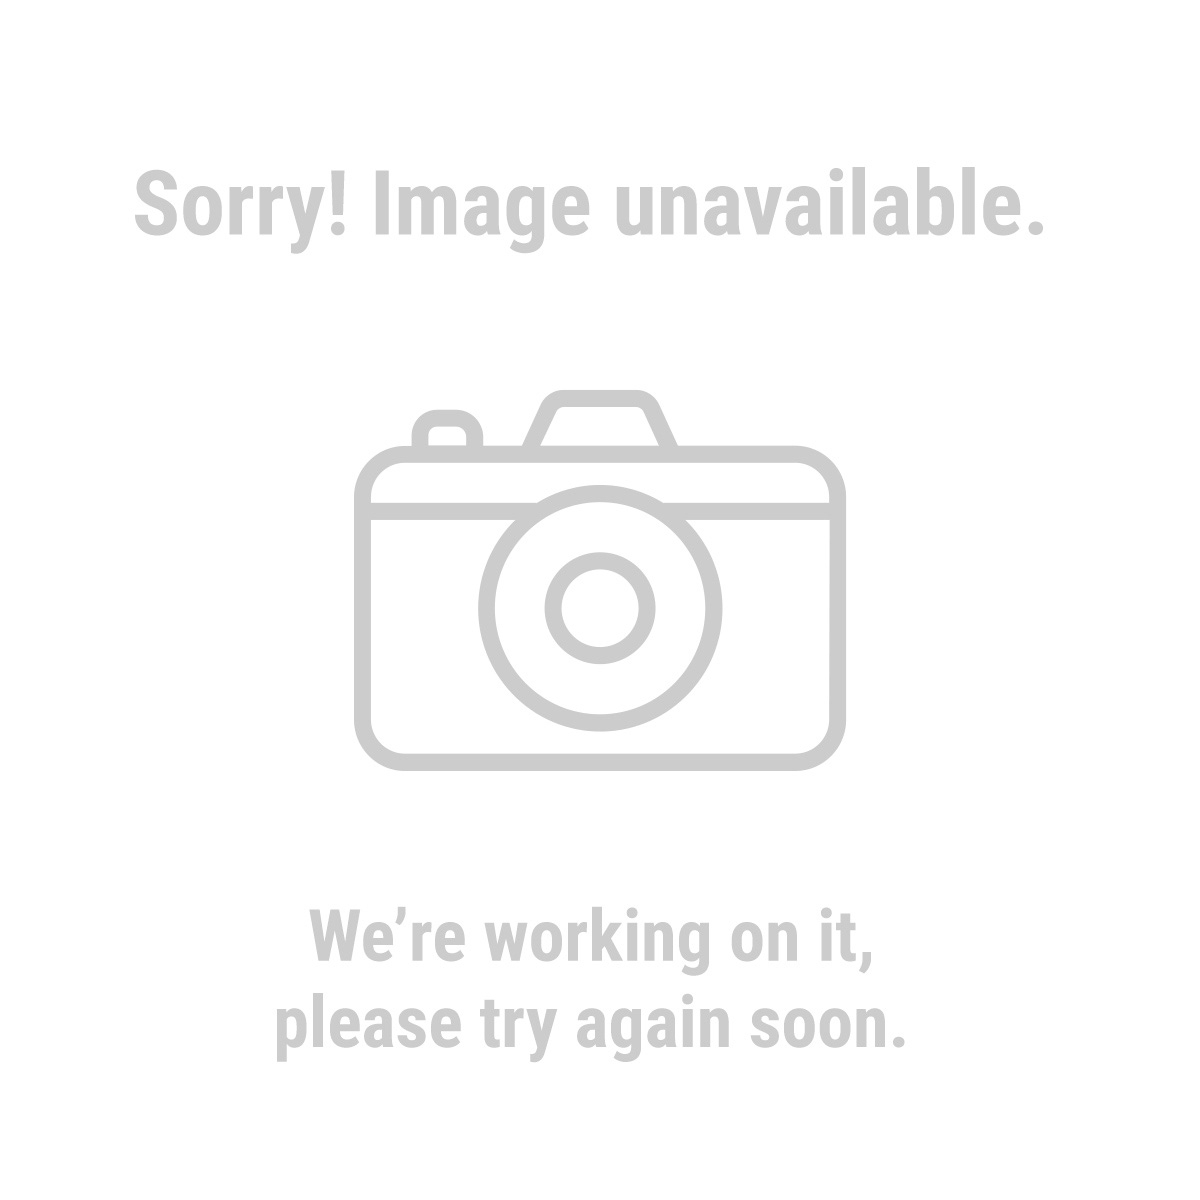 Cen-Tech 99857 1.5 Amp Three Stage Onboard Battery Charger/Maintainer